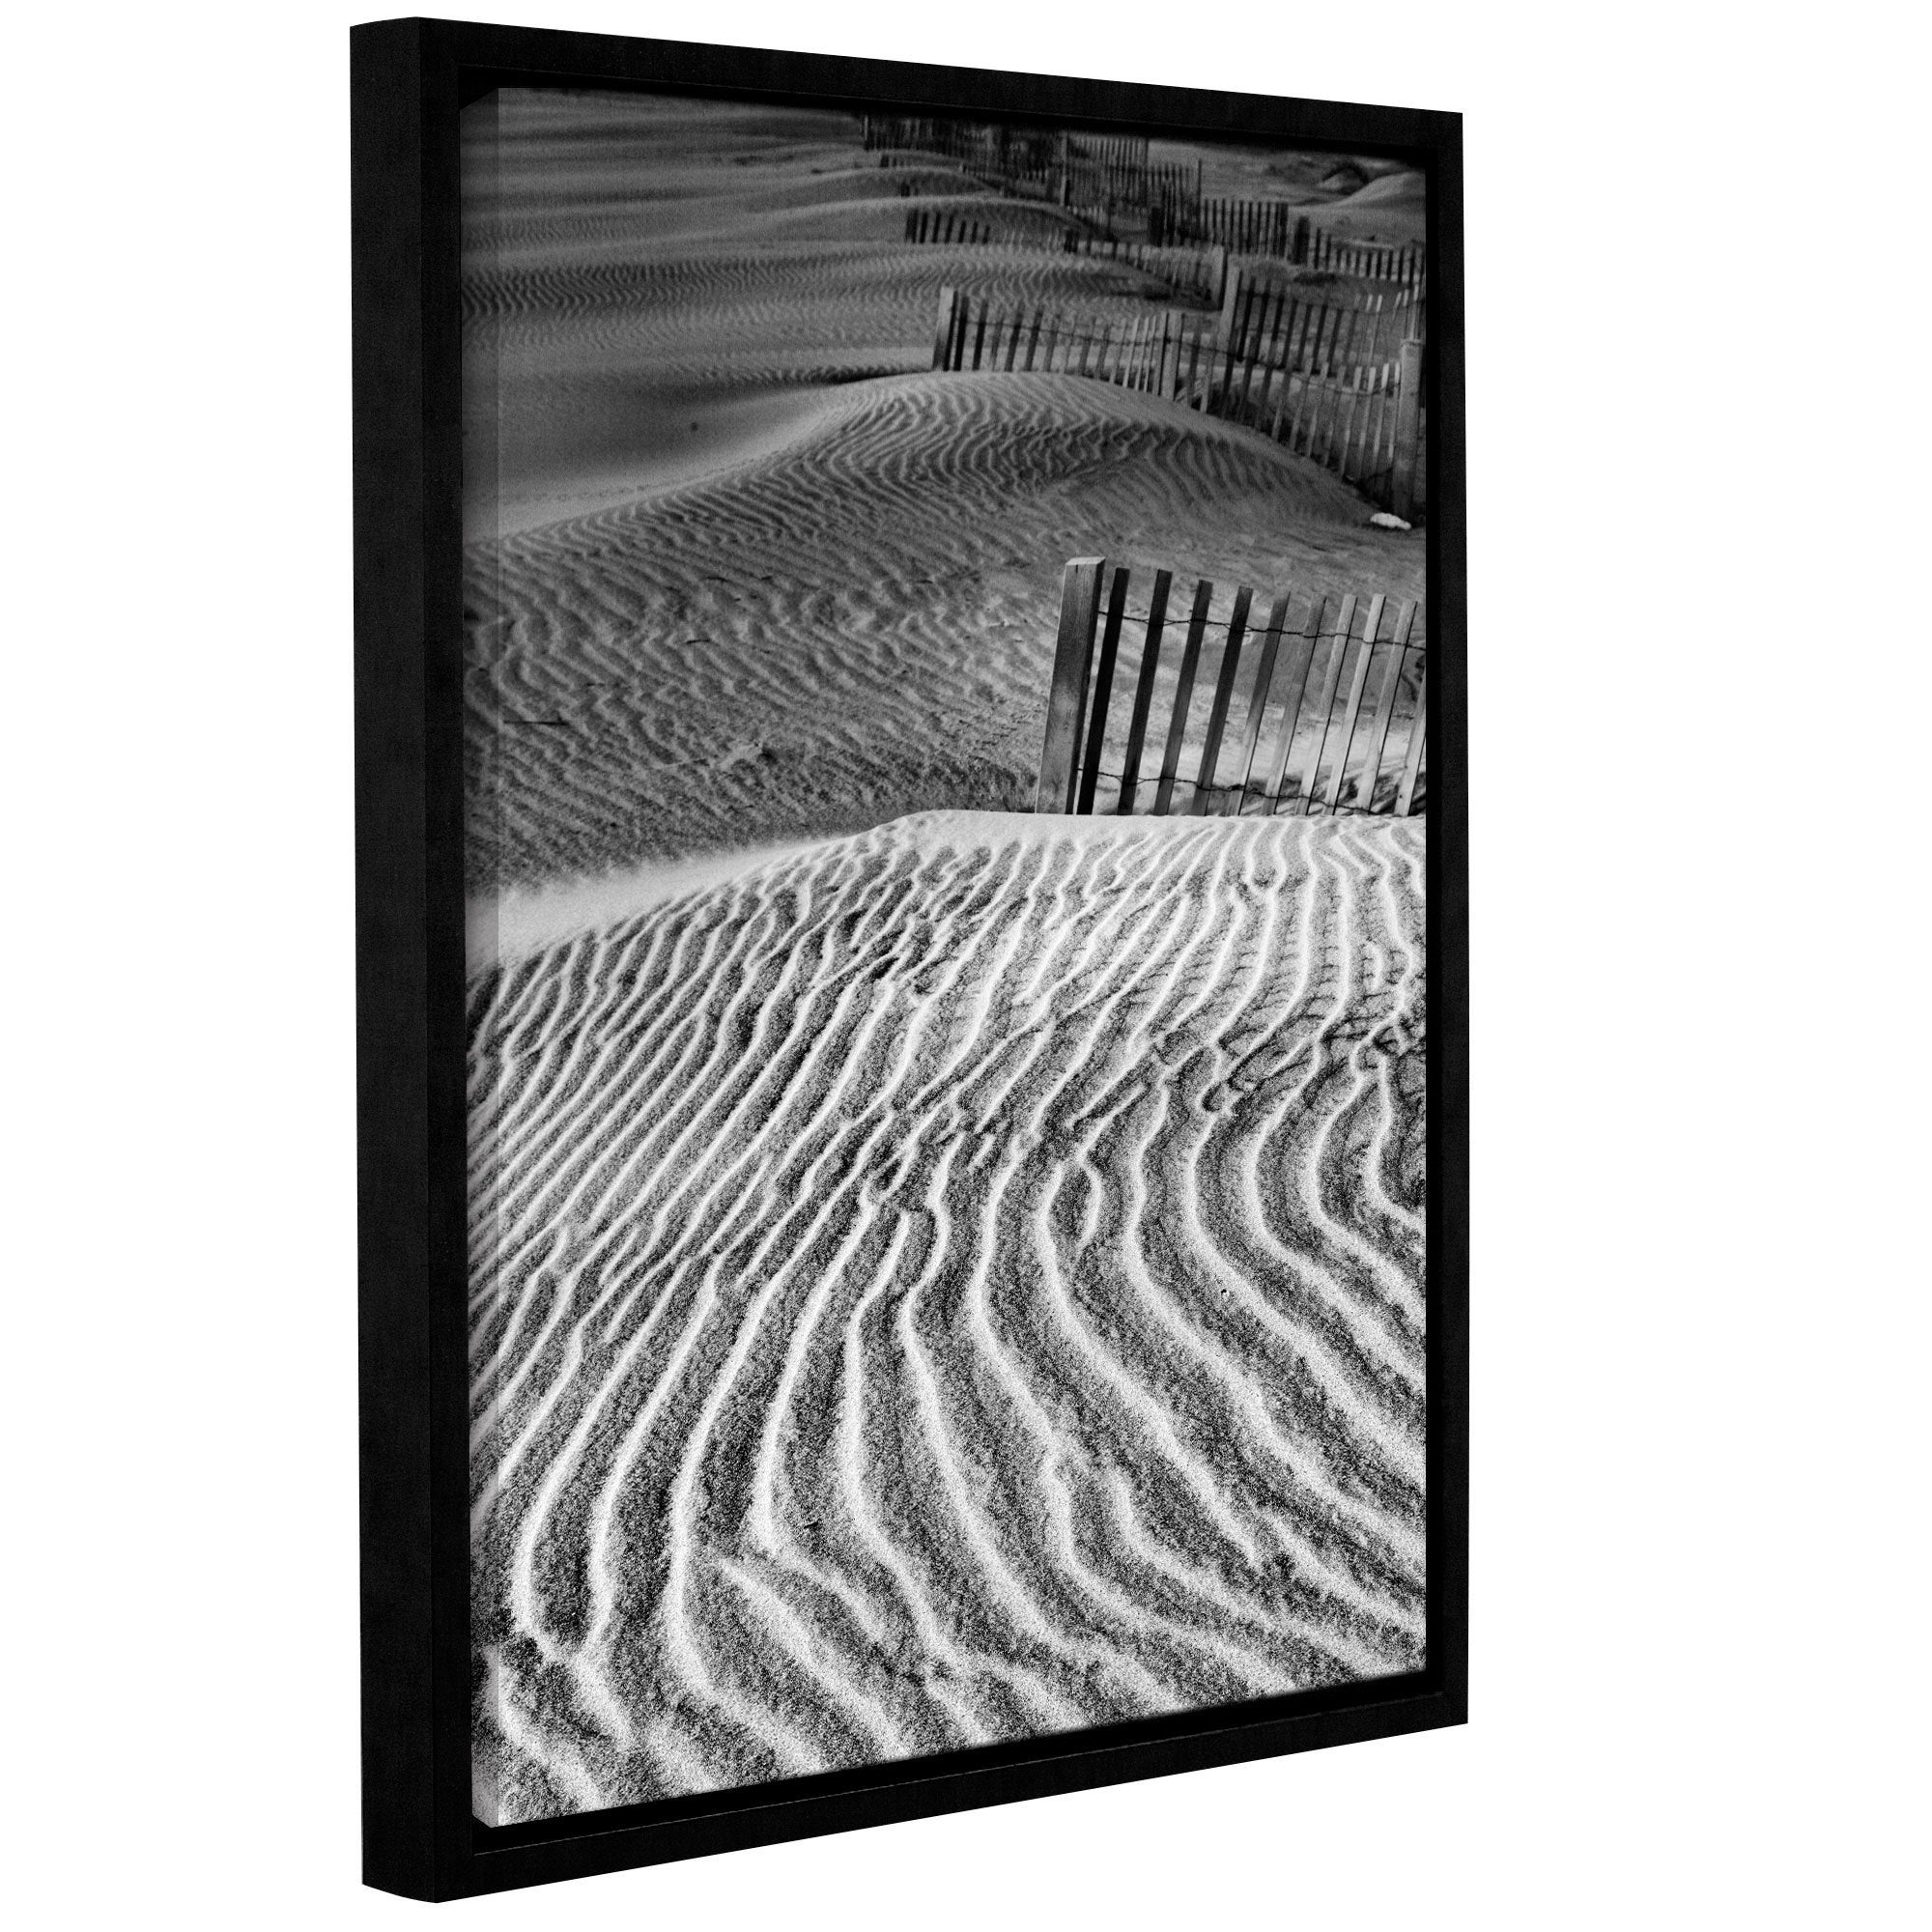 Artwall Steve Ainsworth Dune Patterns Gallery Wrapped Floater Framed Canvas Overstock 10432532